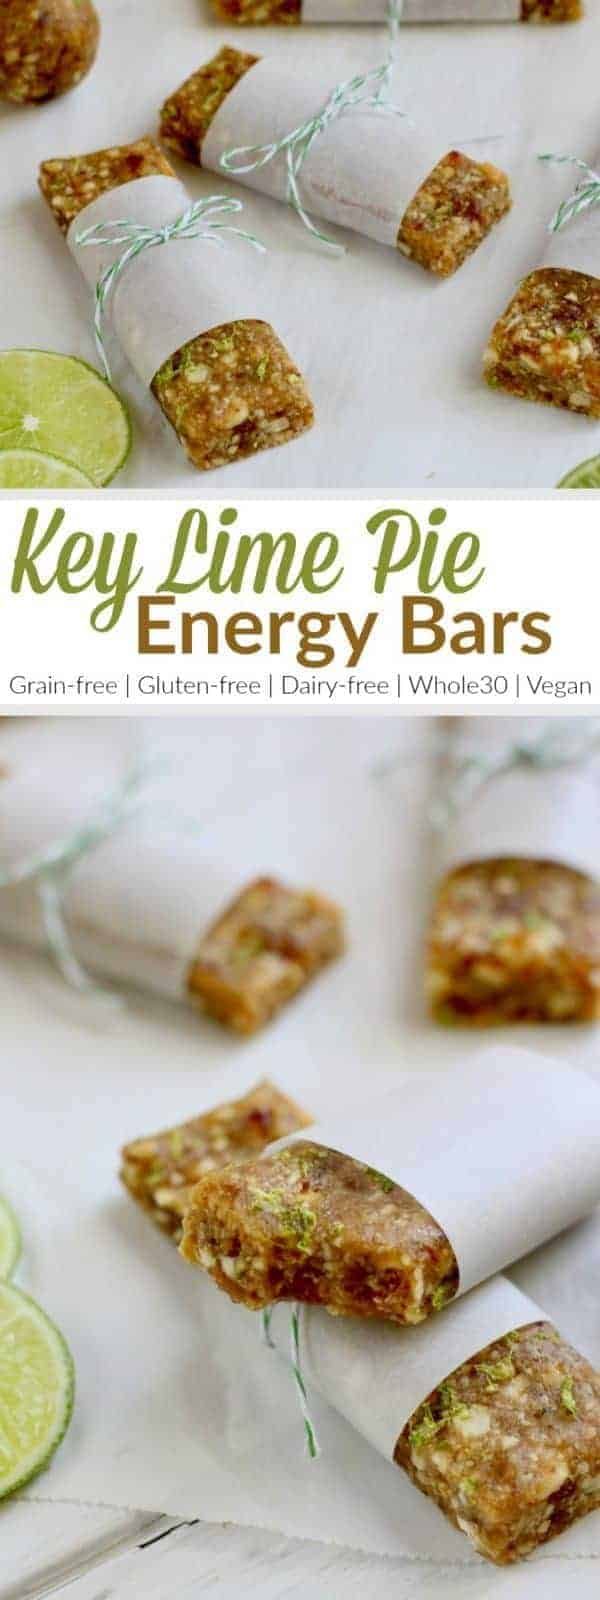 Key Lime Pie Energy Bars | The bars are a knockoff of the fruit and nut bars everyone loves. Feel free to roll them into balls for a bite-sized treat or add a scoop or two of collagen a little protein boost | Paleo | Gluten-free | Grain-free | Dairy-free | Vegan | Egg-free | https://therealfoodrds.com/key-lime-pie-energy-bars/